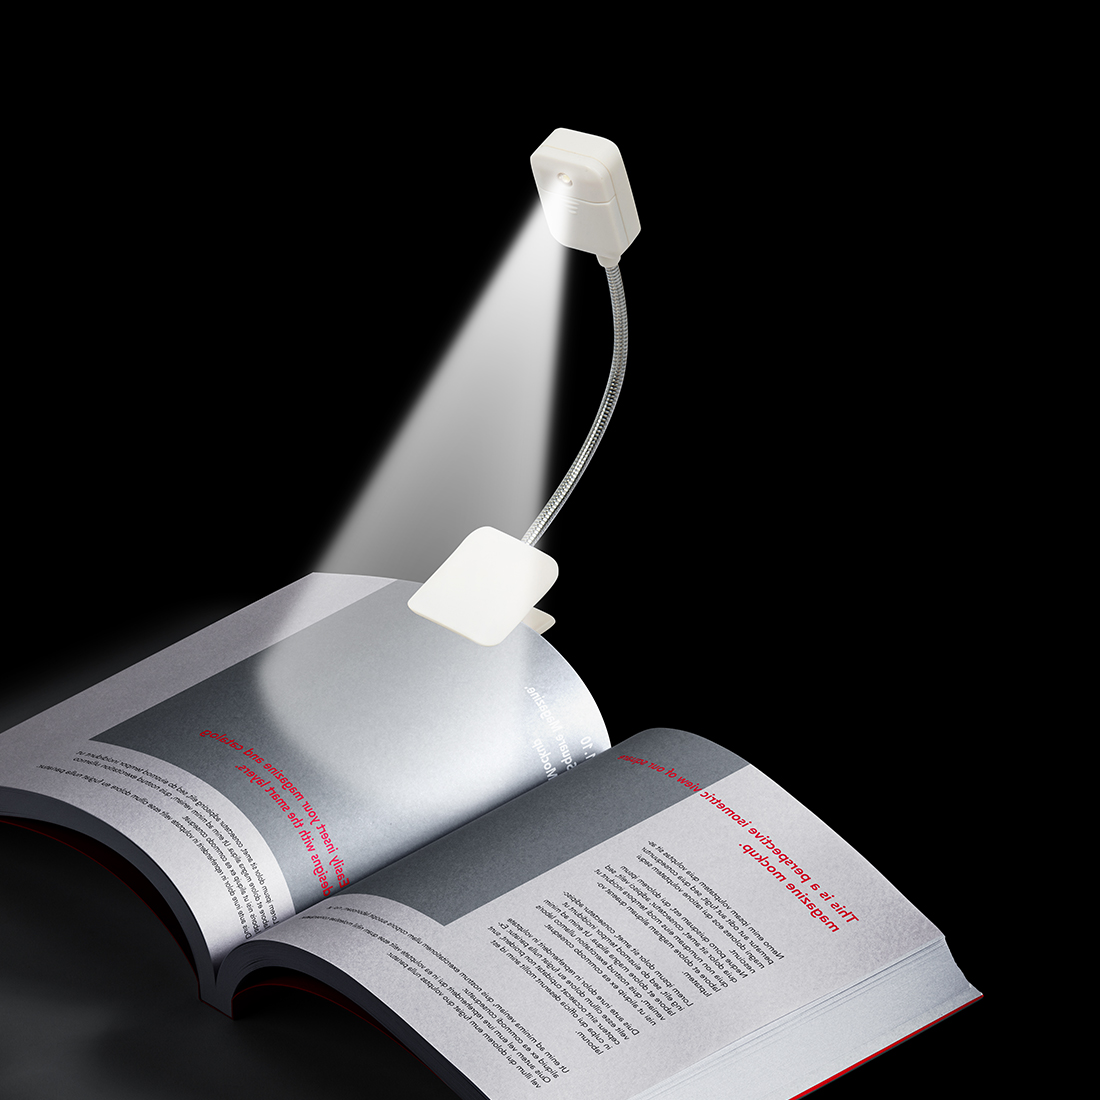 DC 6V Book Notebook Reading Light Night Light LED Book Light Table Lamp Desk Lamp Flexible Clip For Reader Kindle